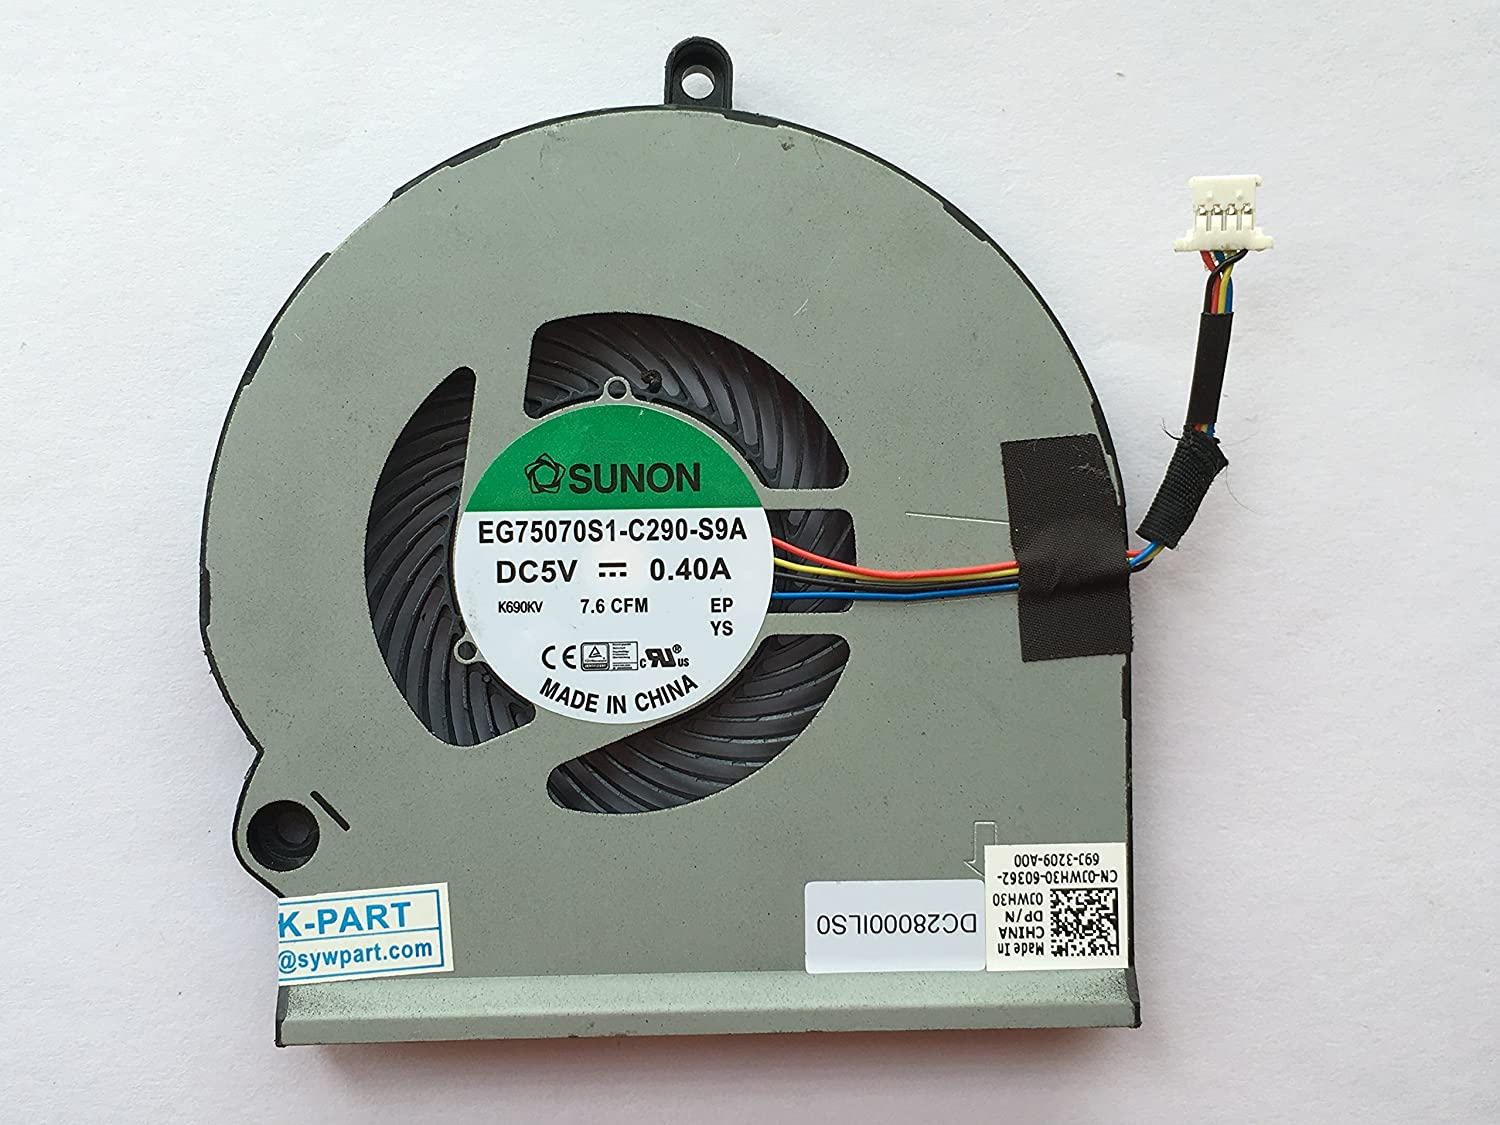 HK-part Replacement Fan for Dell Alienware 15 R3 Cooling Fan Right Side DC28000ILS0 DP/N 0JWH30